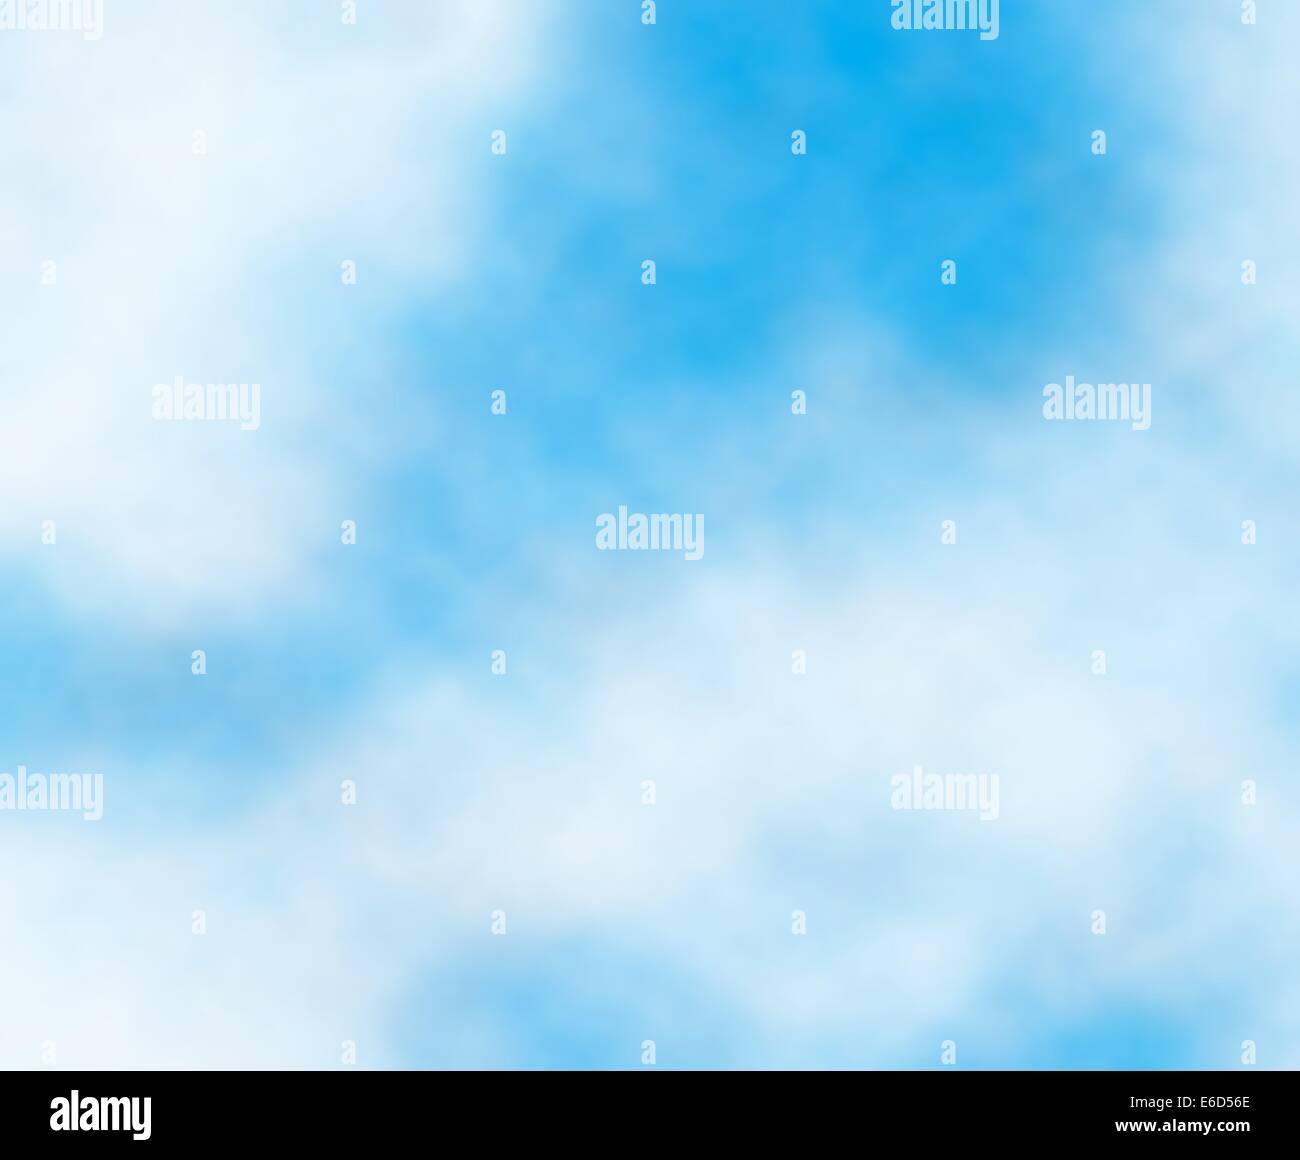 Editable vector background detail of white clouds in a blue sky - Stock Image